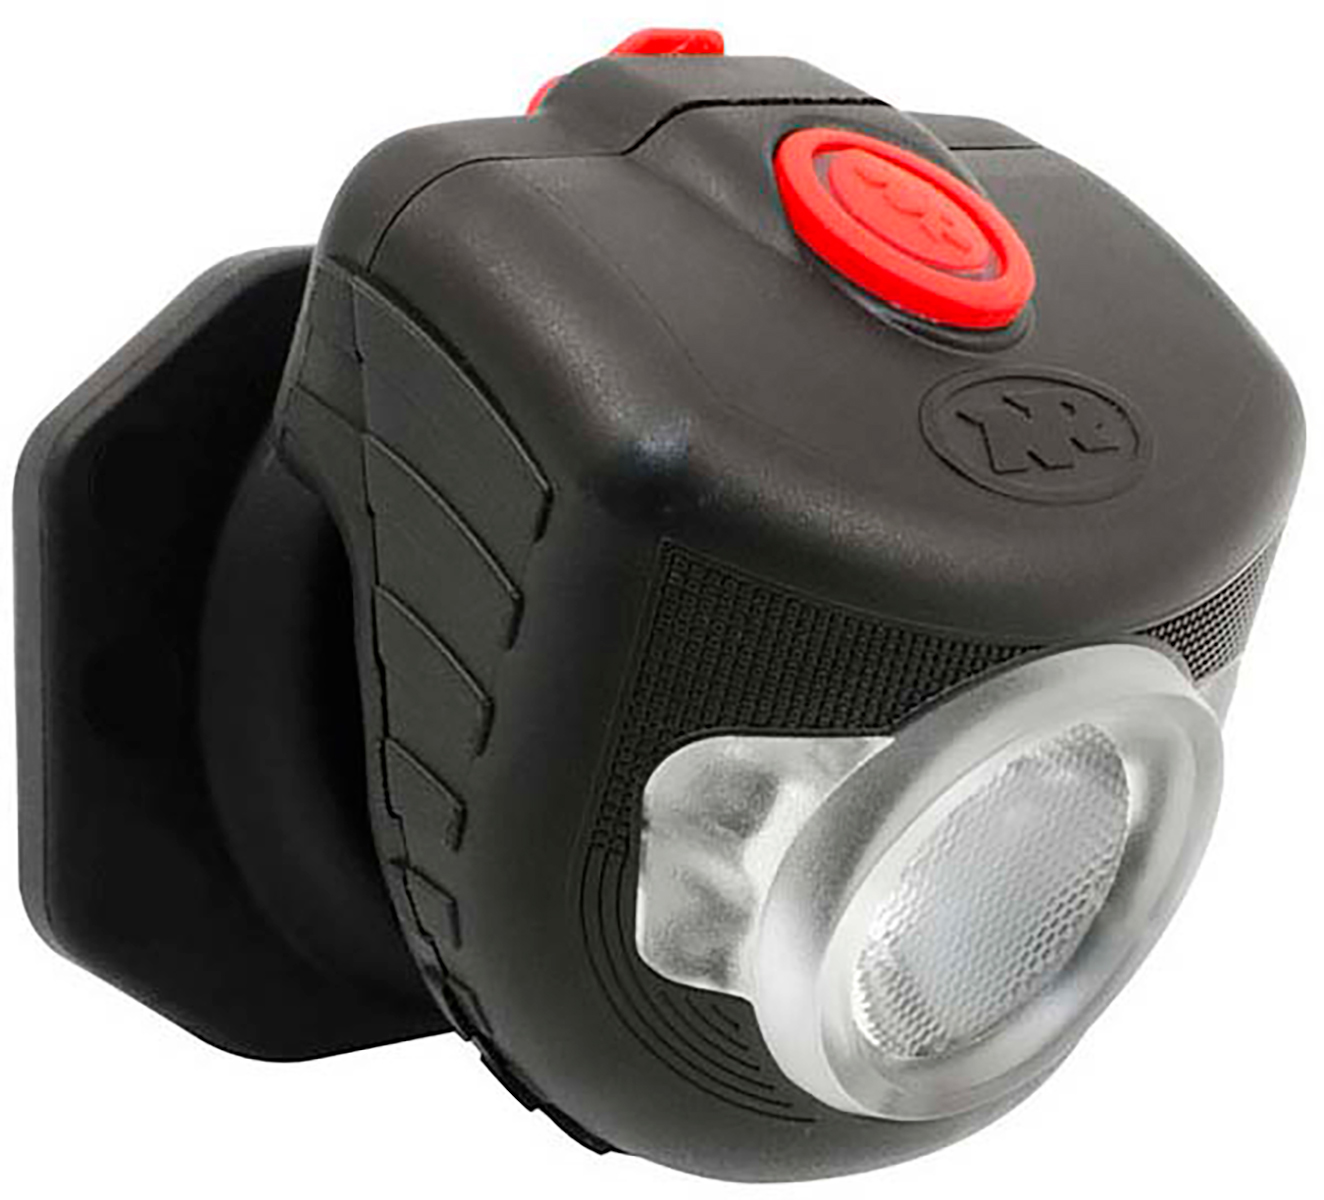 NiteRider Adventure Pro 320 Headlamp | Computer Battery and Charger